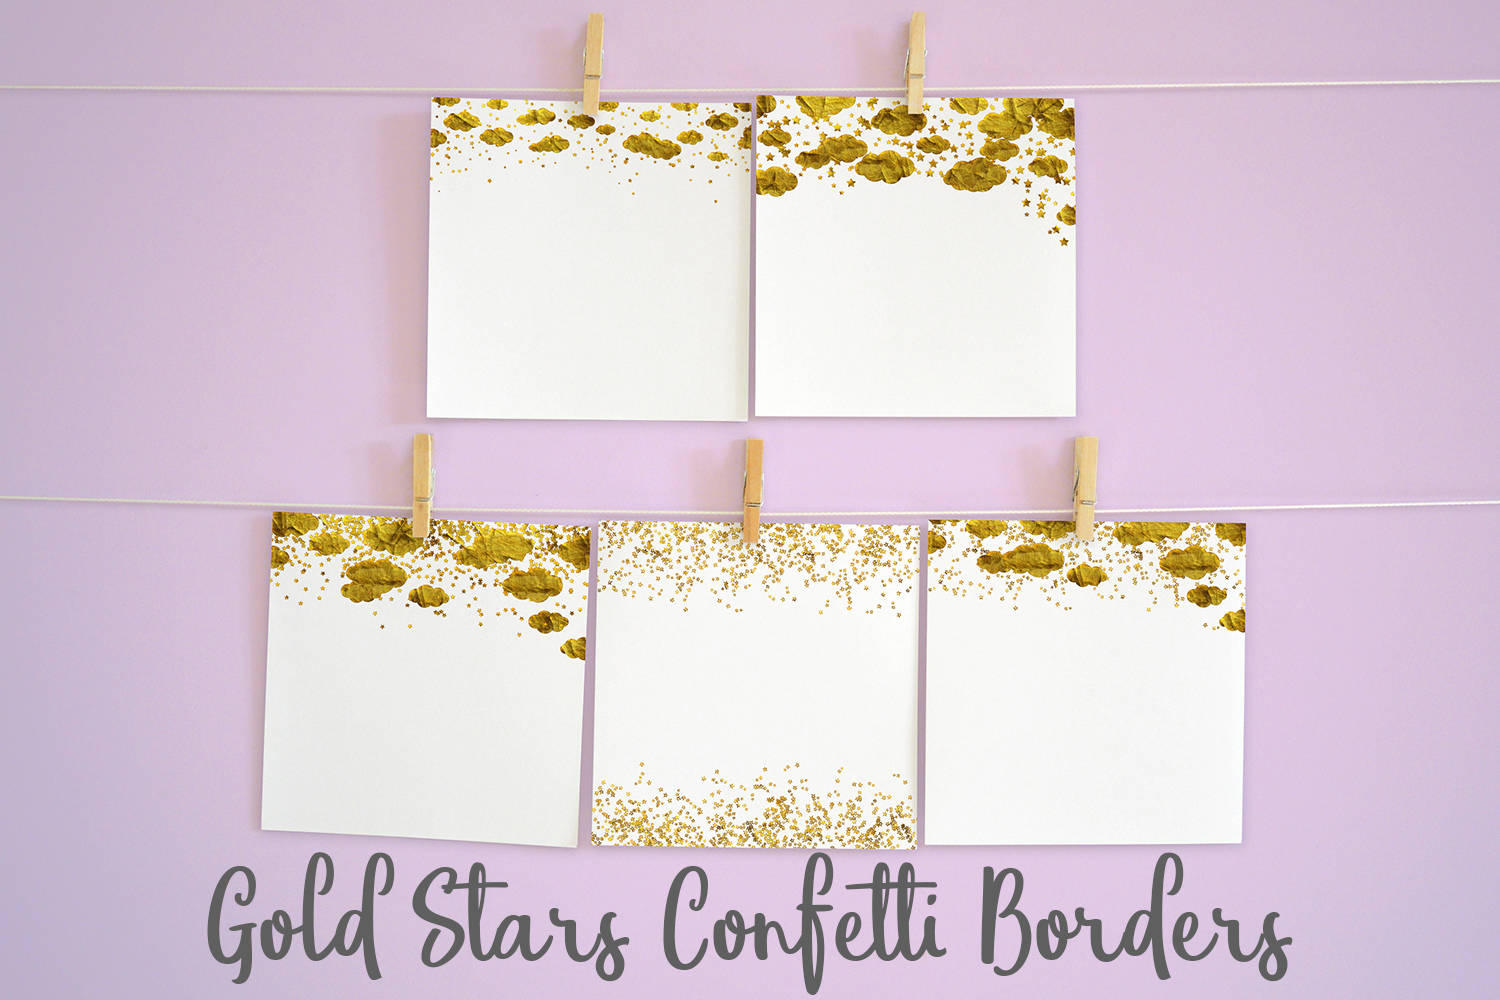 Gold Stars Confetti Borders Pack example image 2